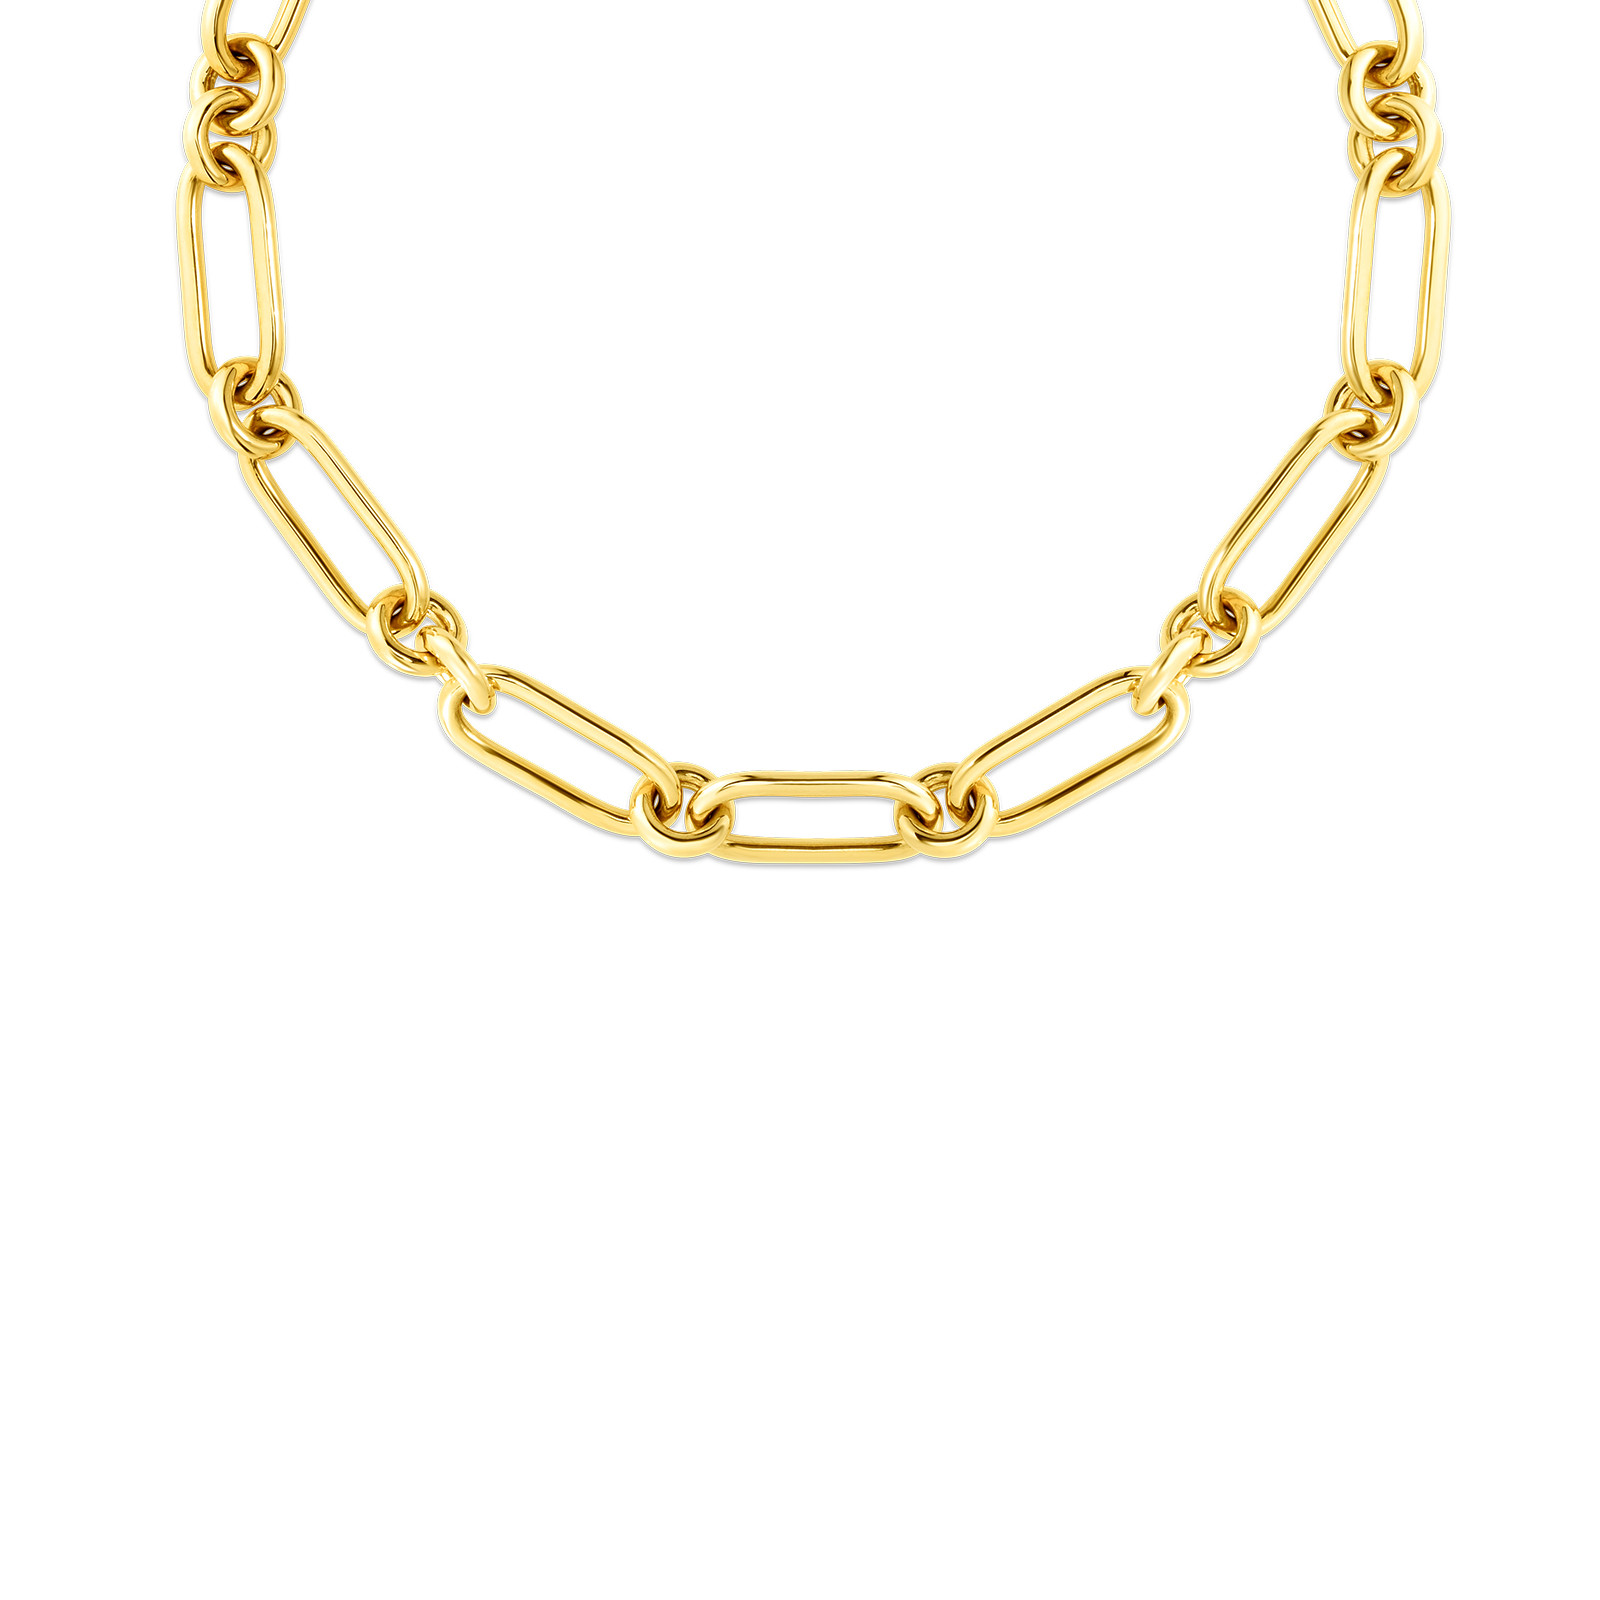 Roberto Coin Link Necklace in 18K Gold front view